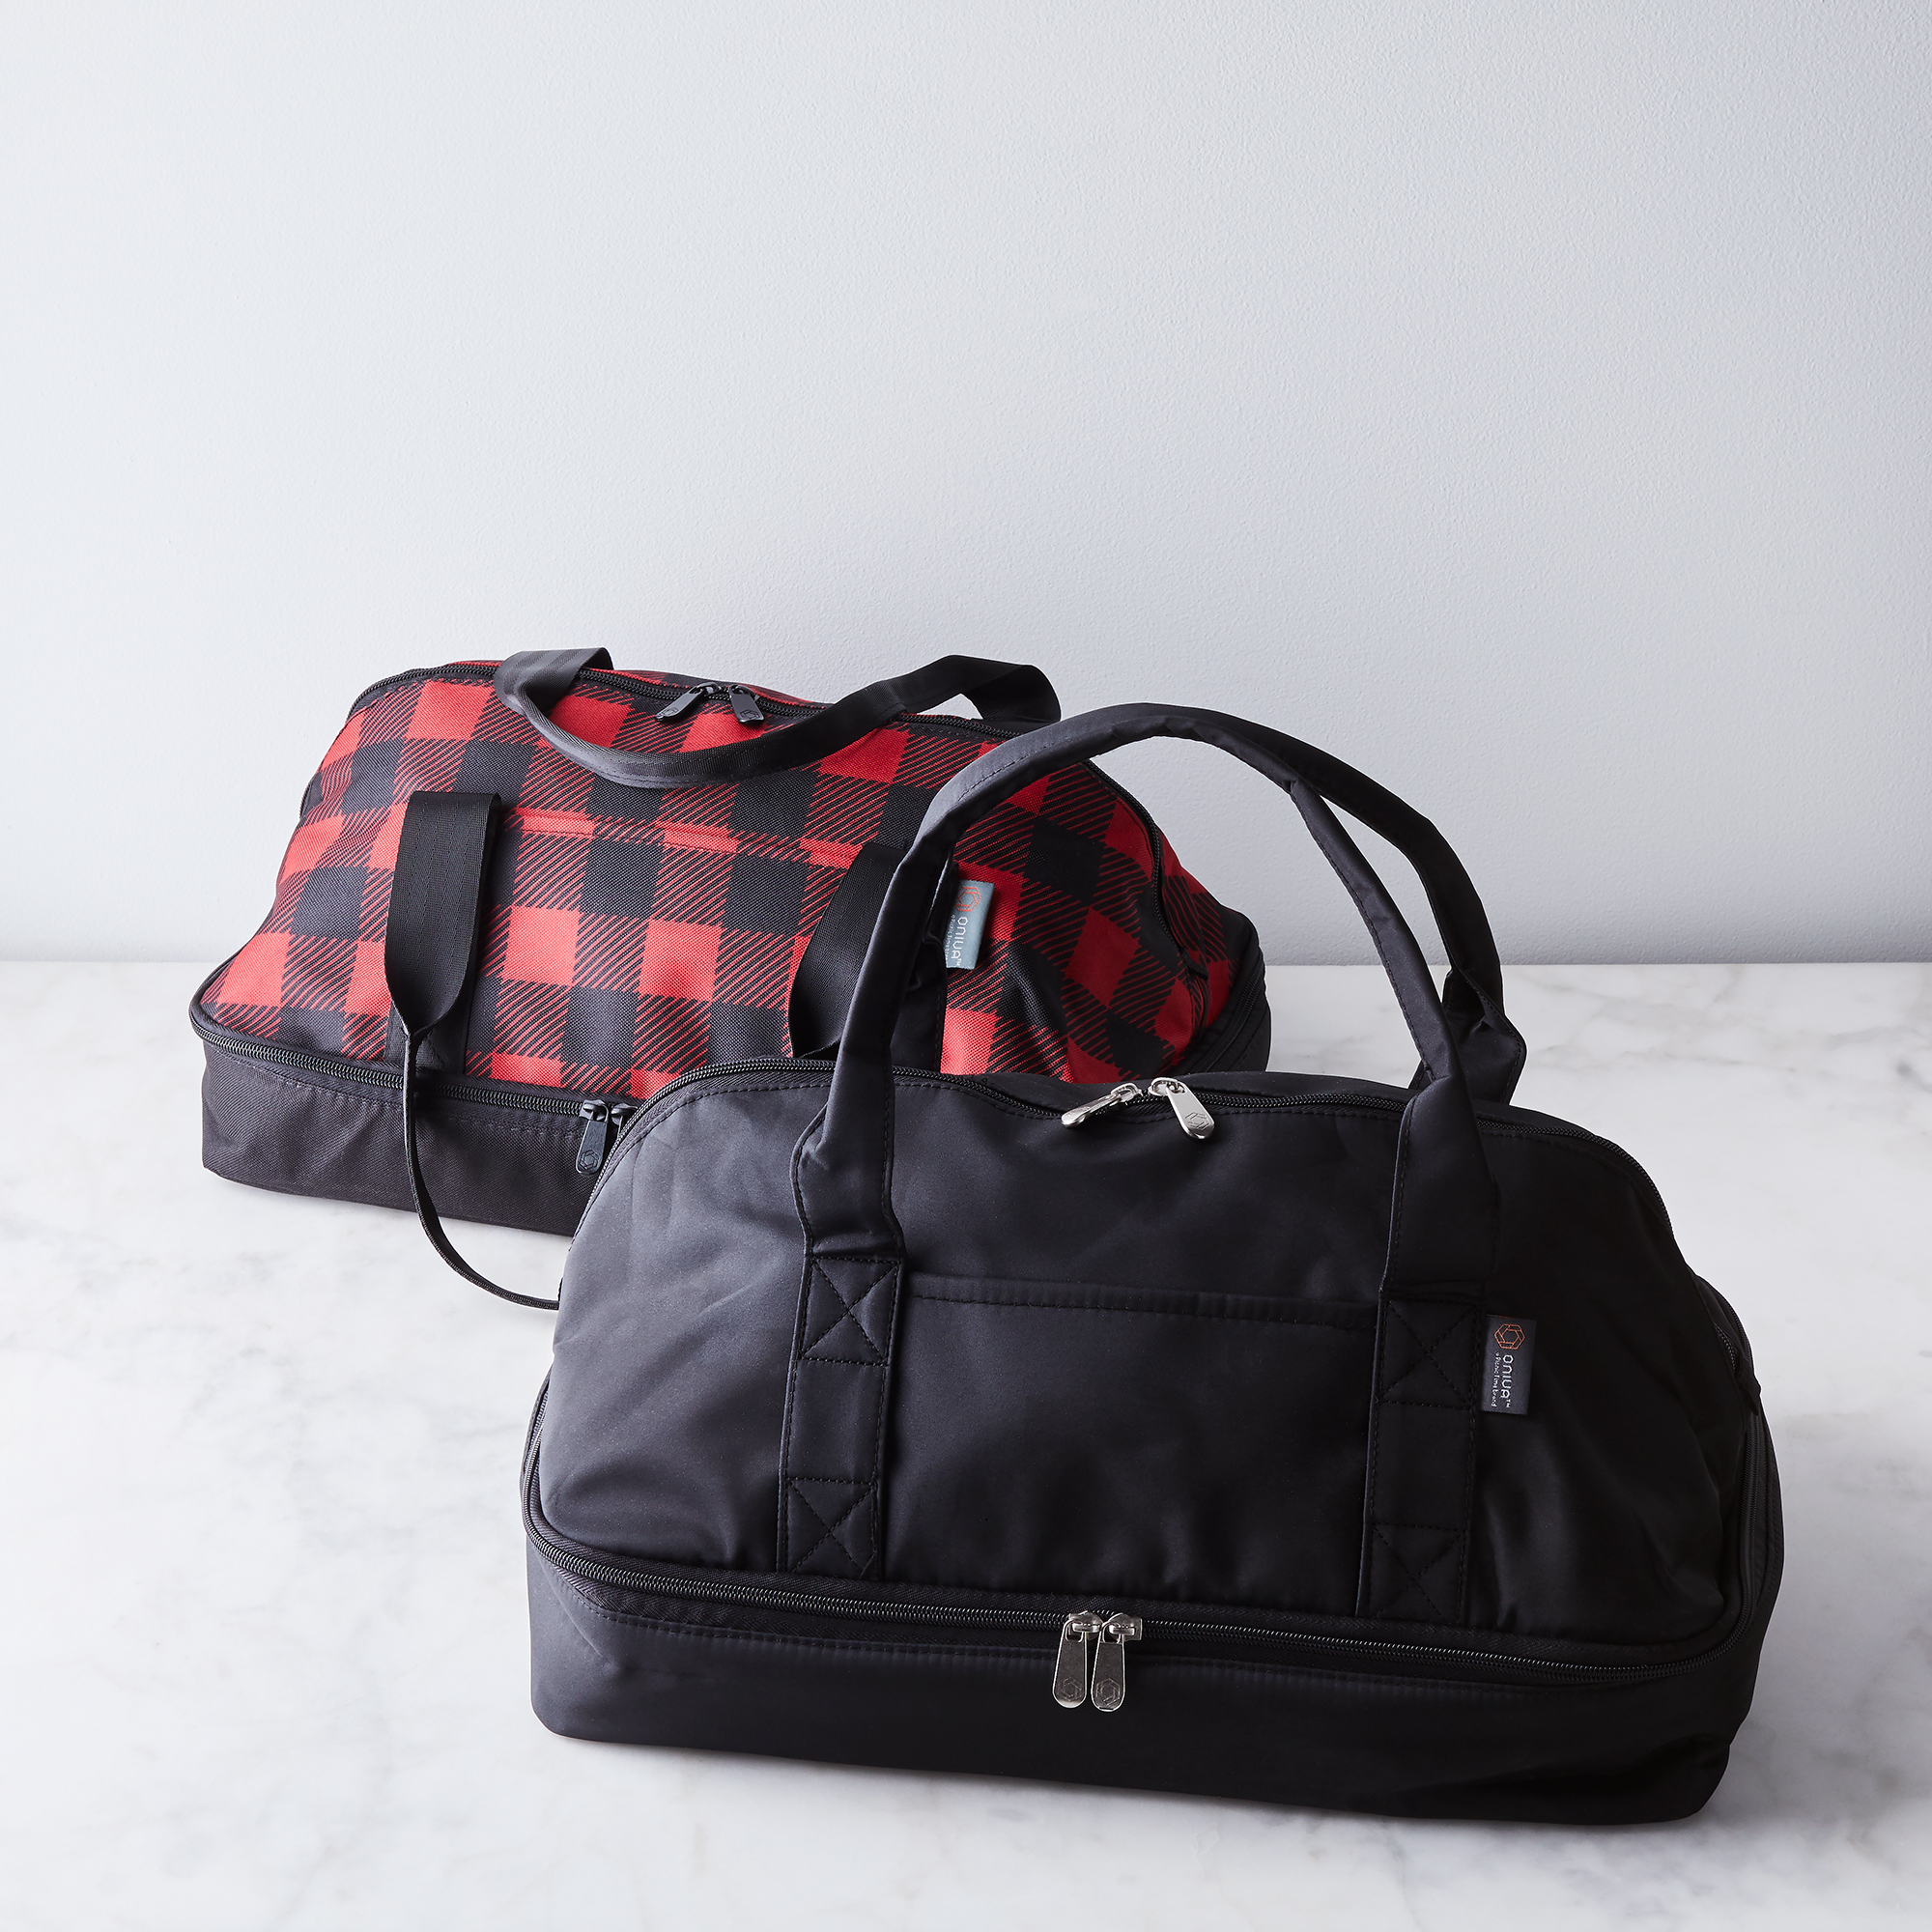 Picnic Time Insulated Casserole Carrier in both black and plaid